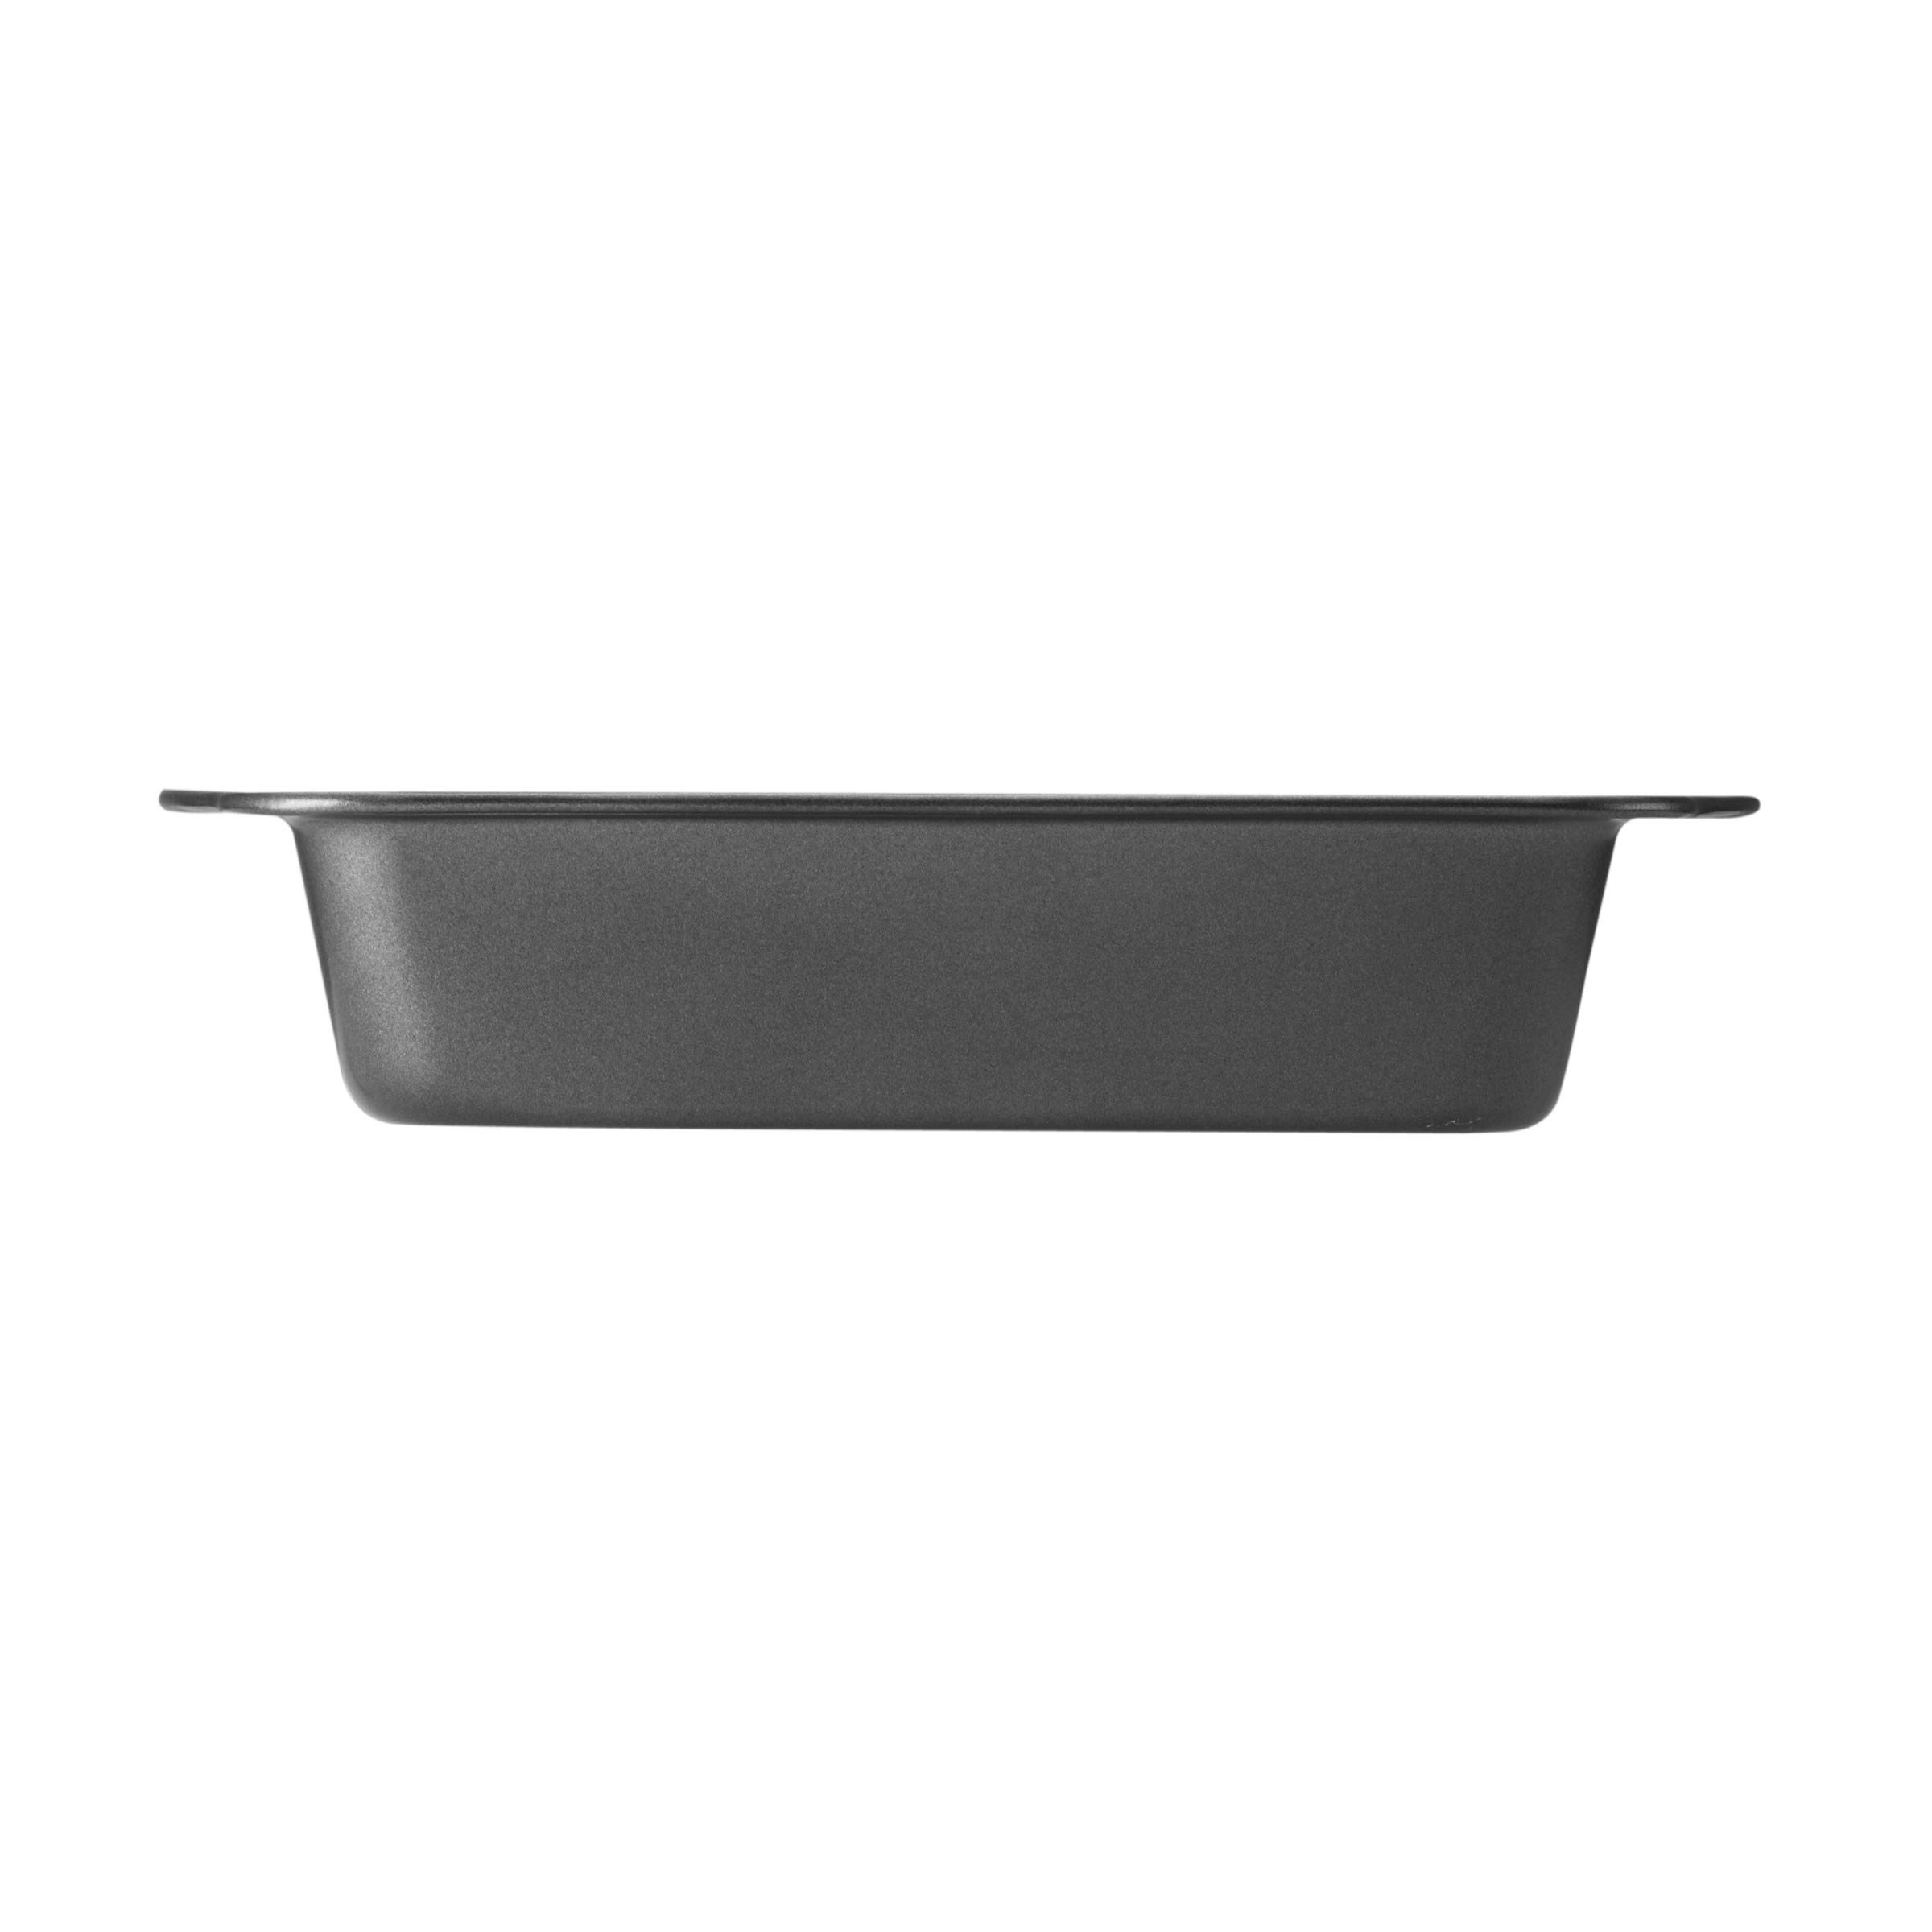 Baker's Advantage 5111829 Non-Stick Carbon Steel Square Baking Dish 8-Inch Dark by Baker's Advantage (Image #2)